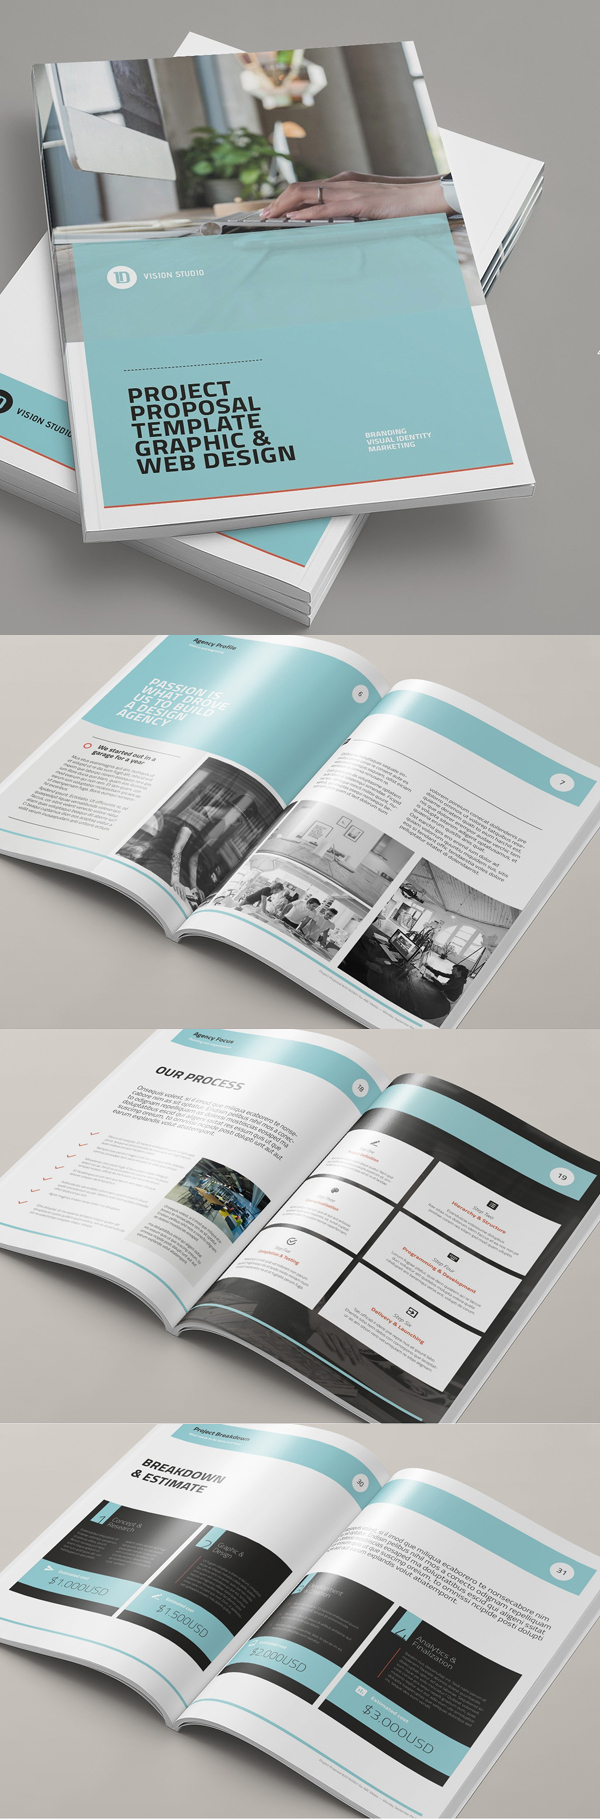 18 professional and creative brochure templates design blog for Professional brochure design templates